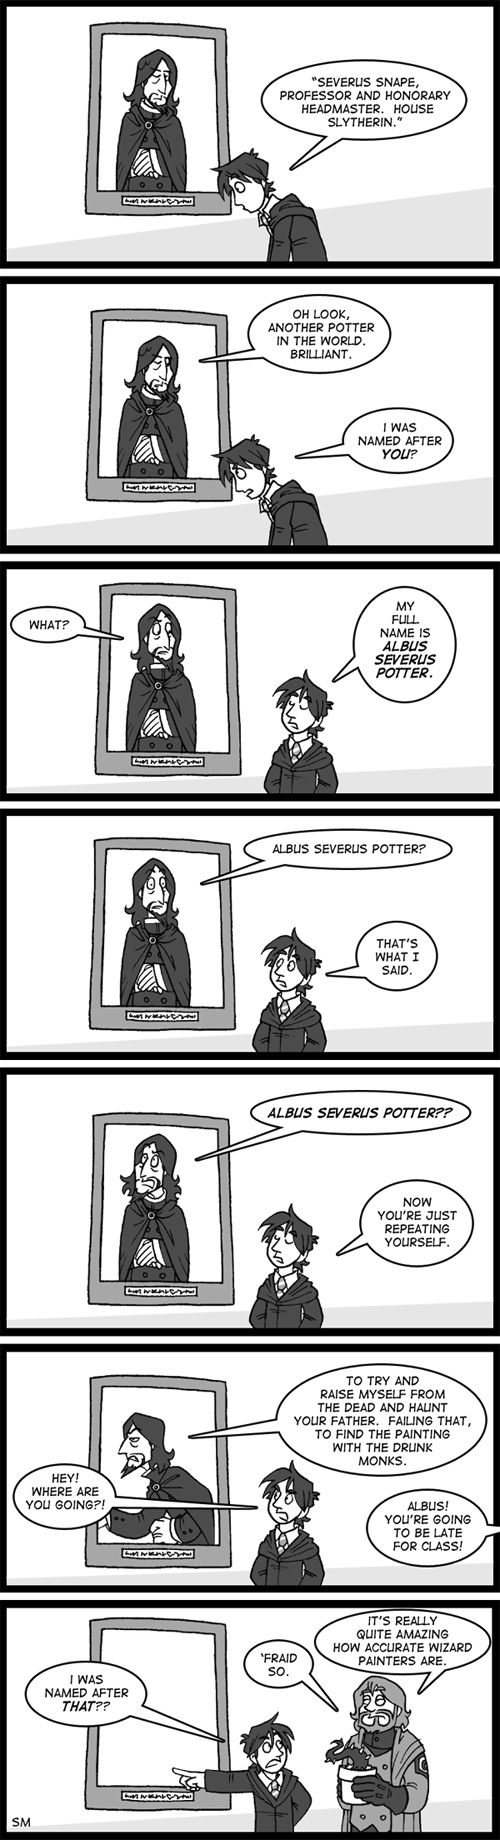 Snape really wouldn't have been appreciative of having a Potter named after him. Snape loved Lily, but he hated Harry, James, and just about everyone else.